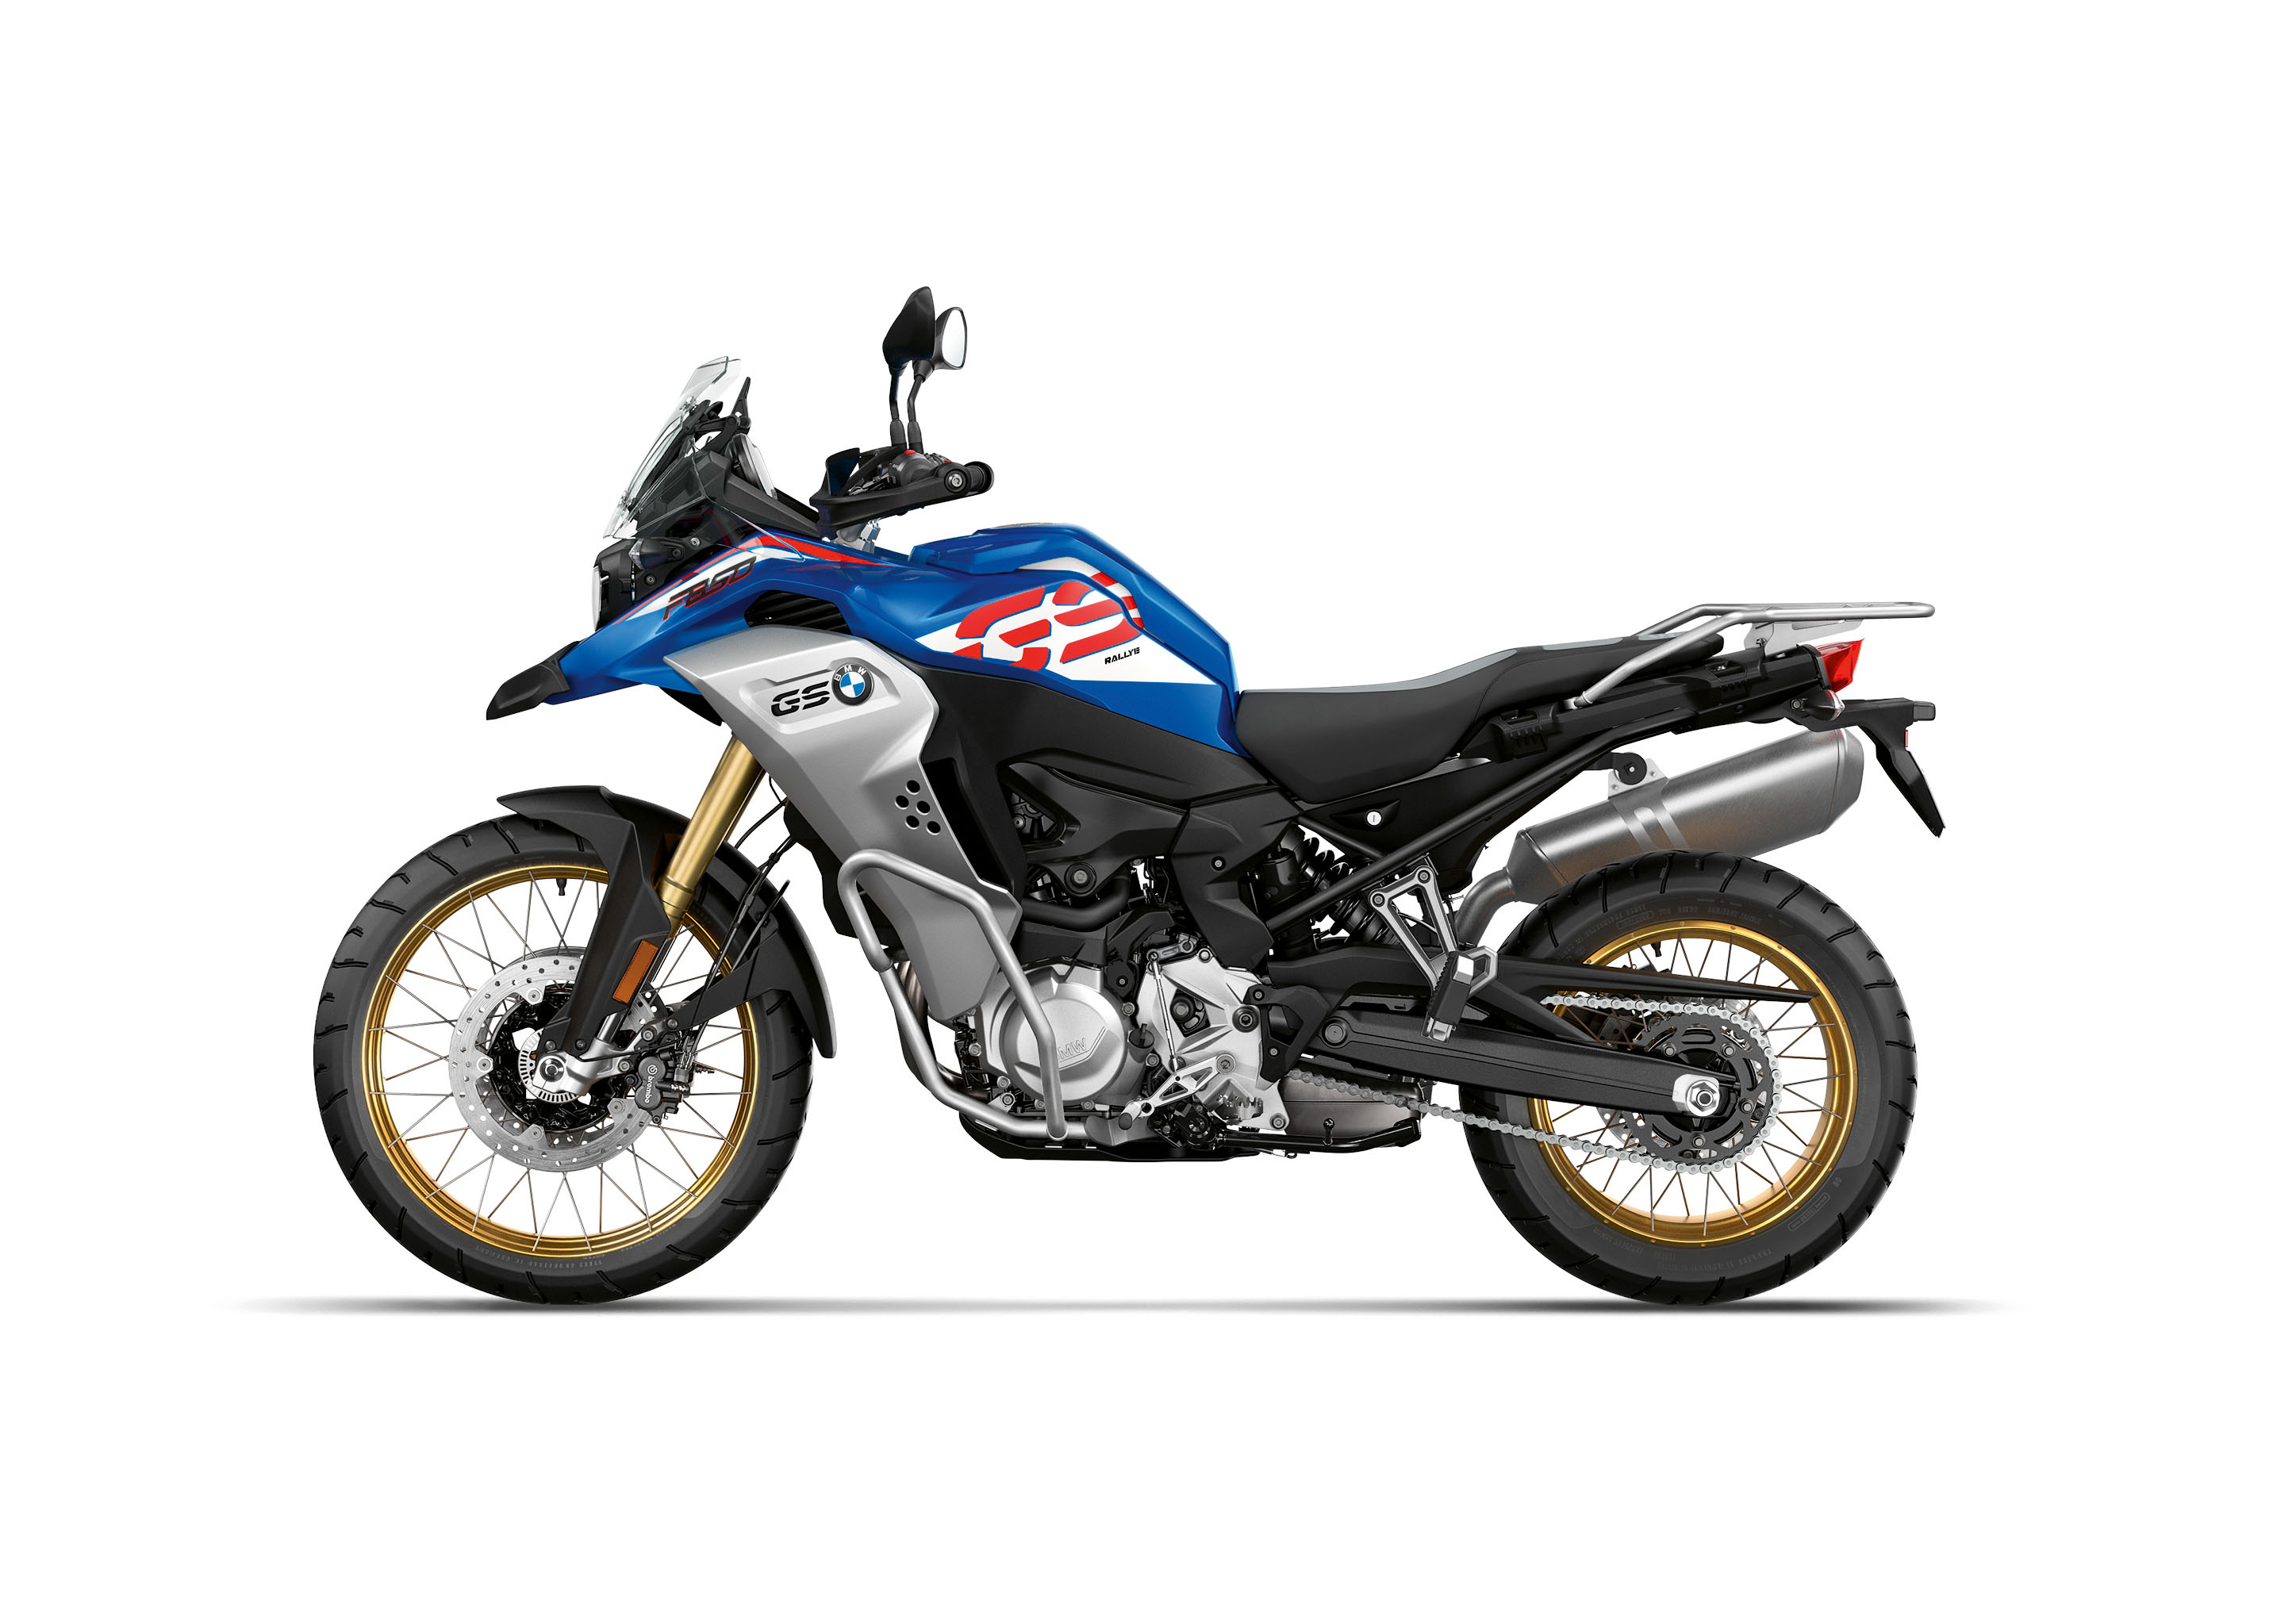 2019 Bmw F850gs Adventure First Look Motorcycle Com